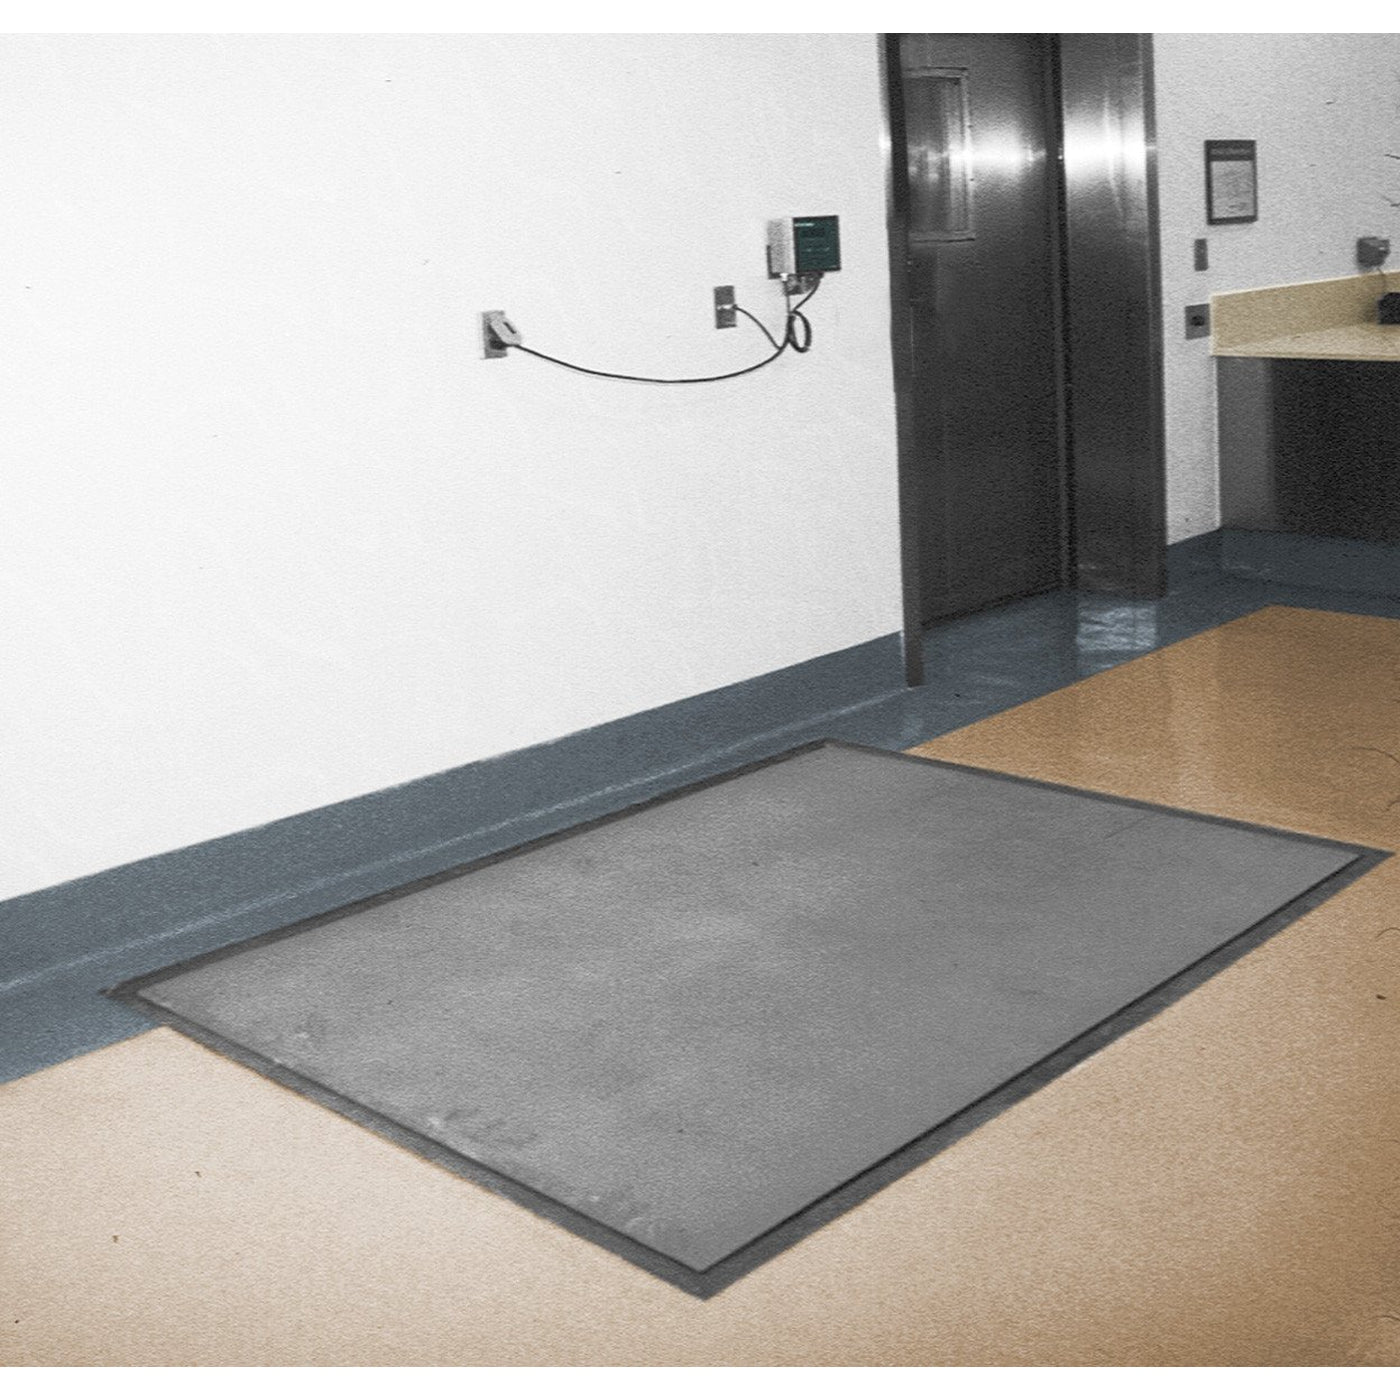 Floor Scales-Laboratory Accessory-Mortech Manufacturing Company Inc. Quality Stainless Steel Autopsy, Morgue, Funeral Home, Necropsy, Veterinary / Anatomy, Dissection Equipment and Accessories